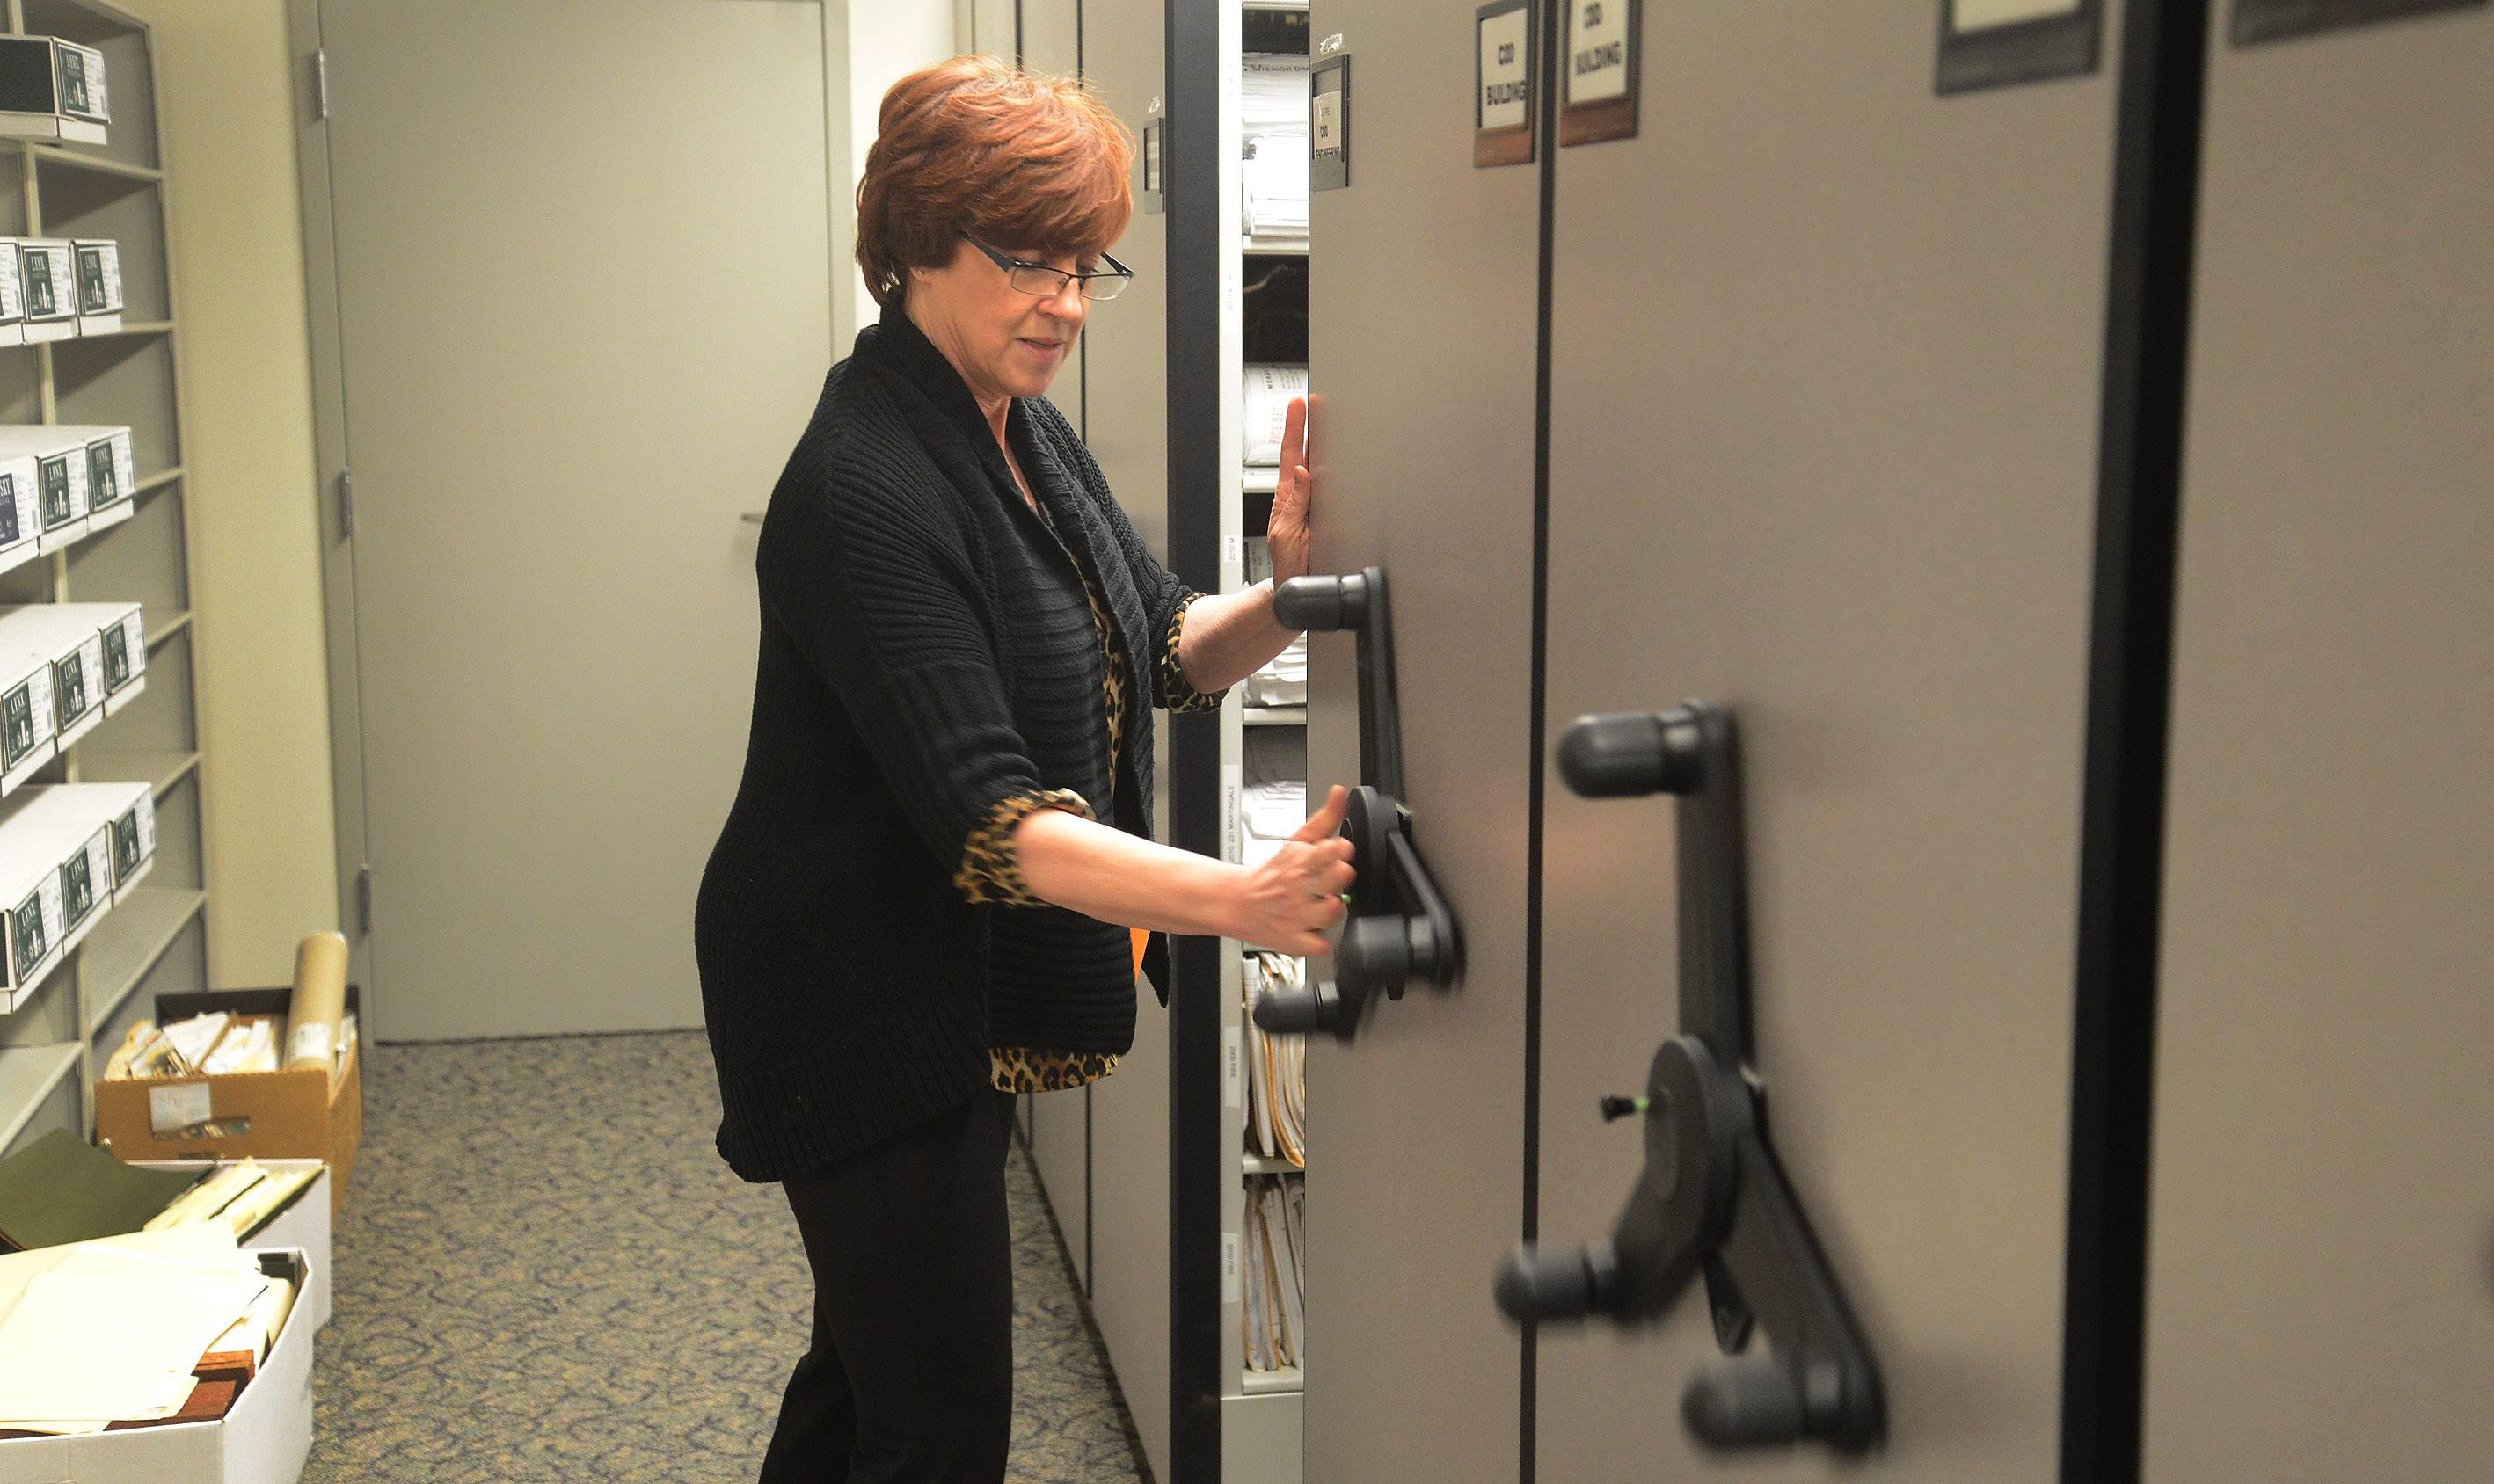 Jane Lentino, Schaumburg permit control clerk, tracks down information for a FOIA request in the basement archives.